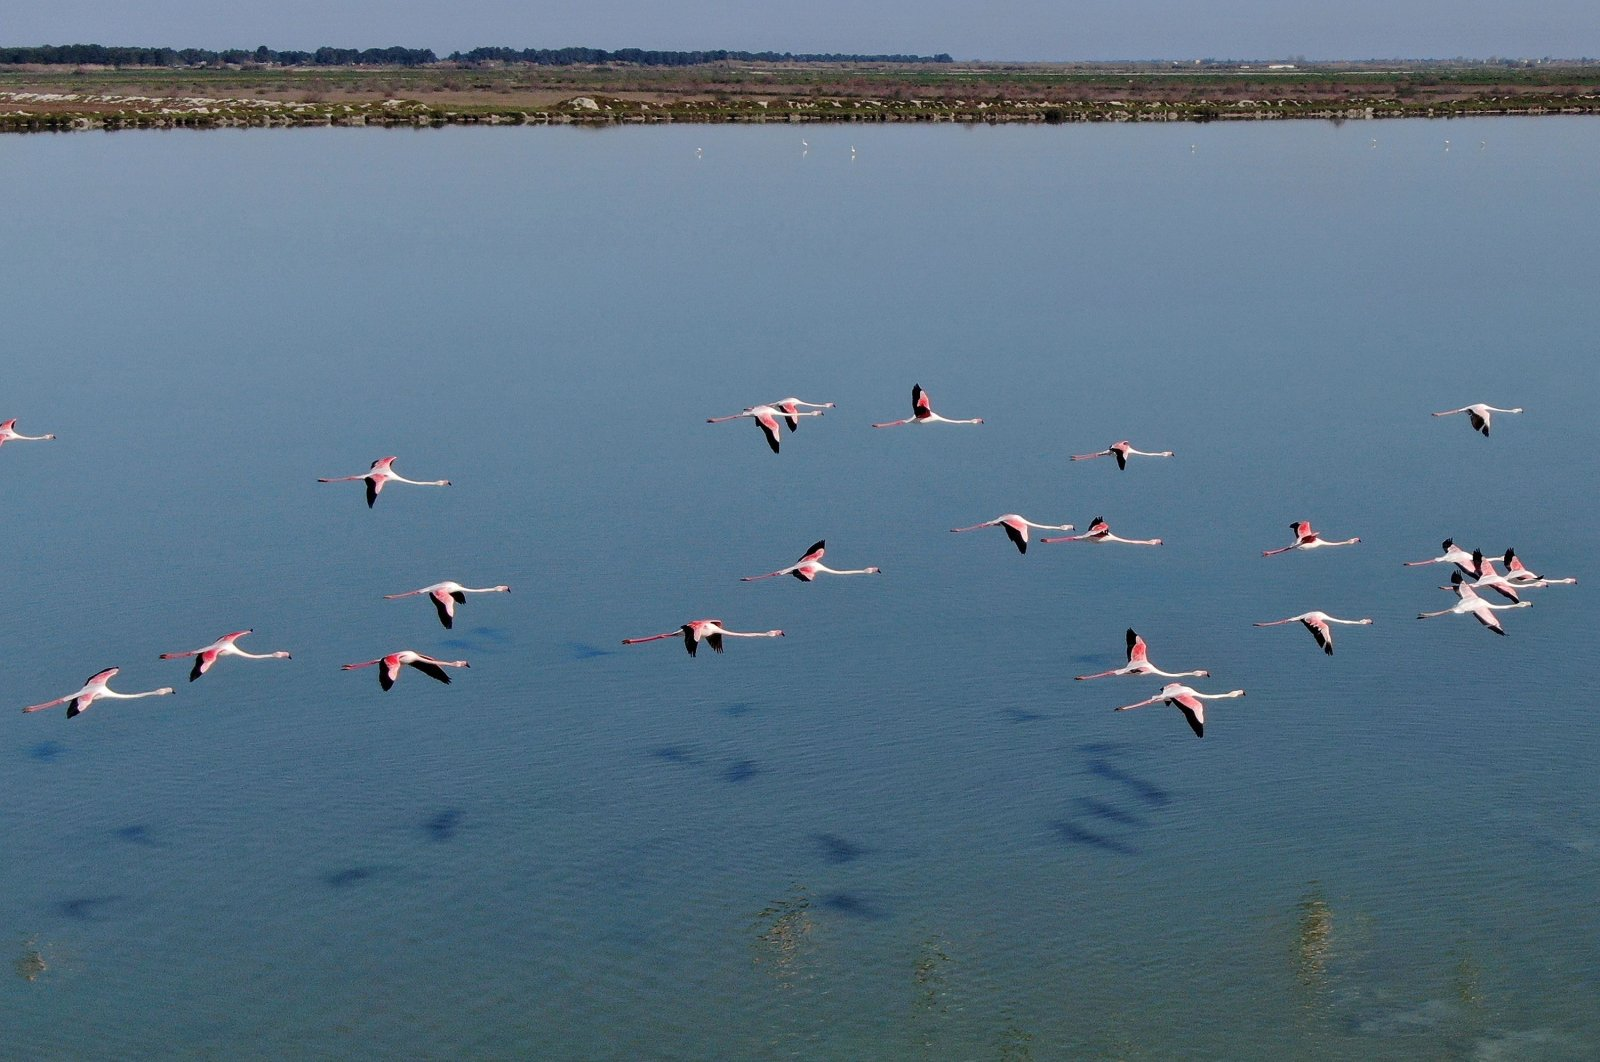 Flamingos fly over the Narta Lagoon, near the city of Vlora in the south of Albania on April 9, 2020. (AFP Photo)